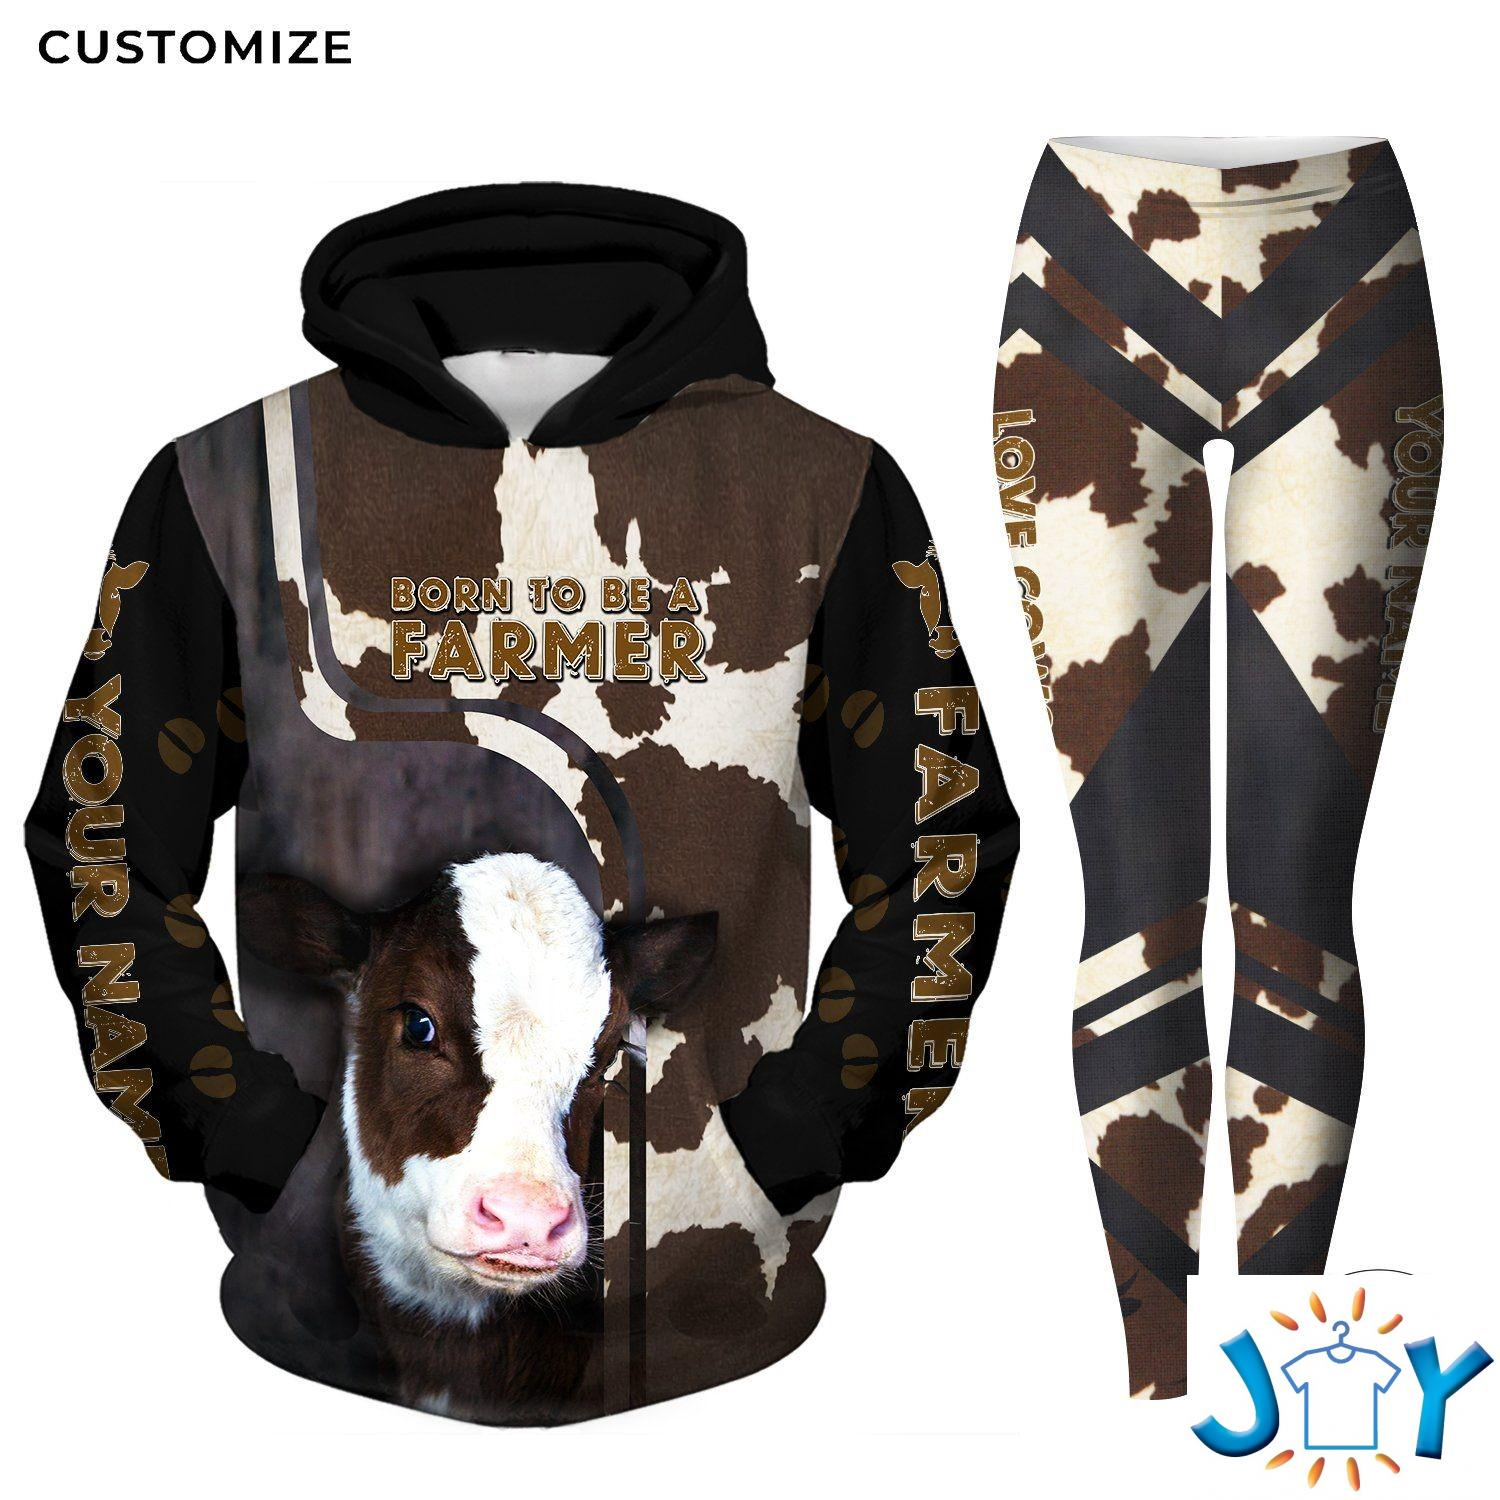 Personalized Born to Be A Farmer 3D hoodies and leggings